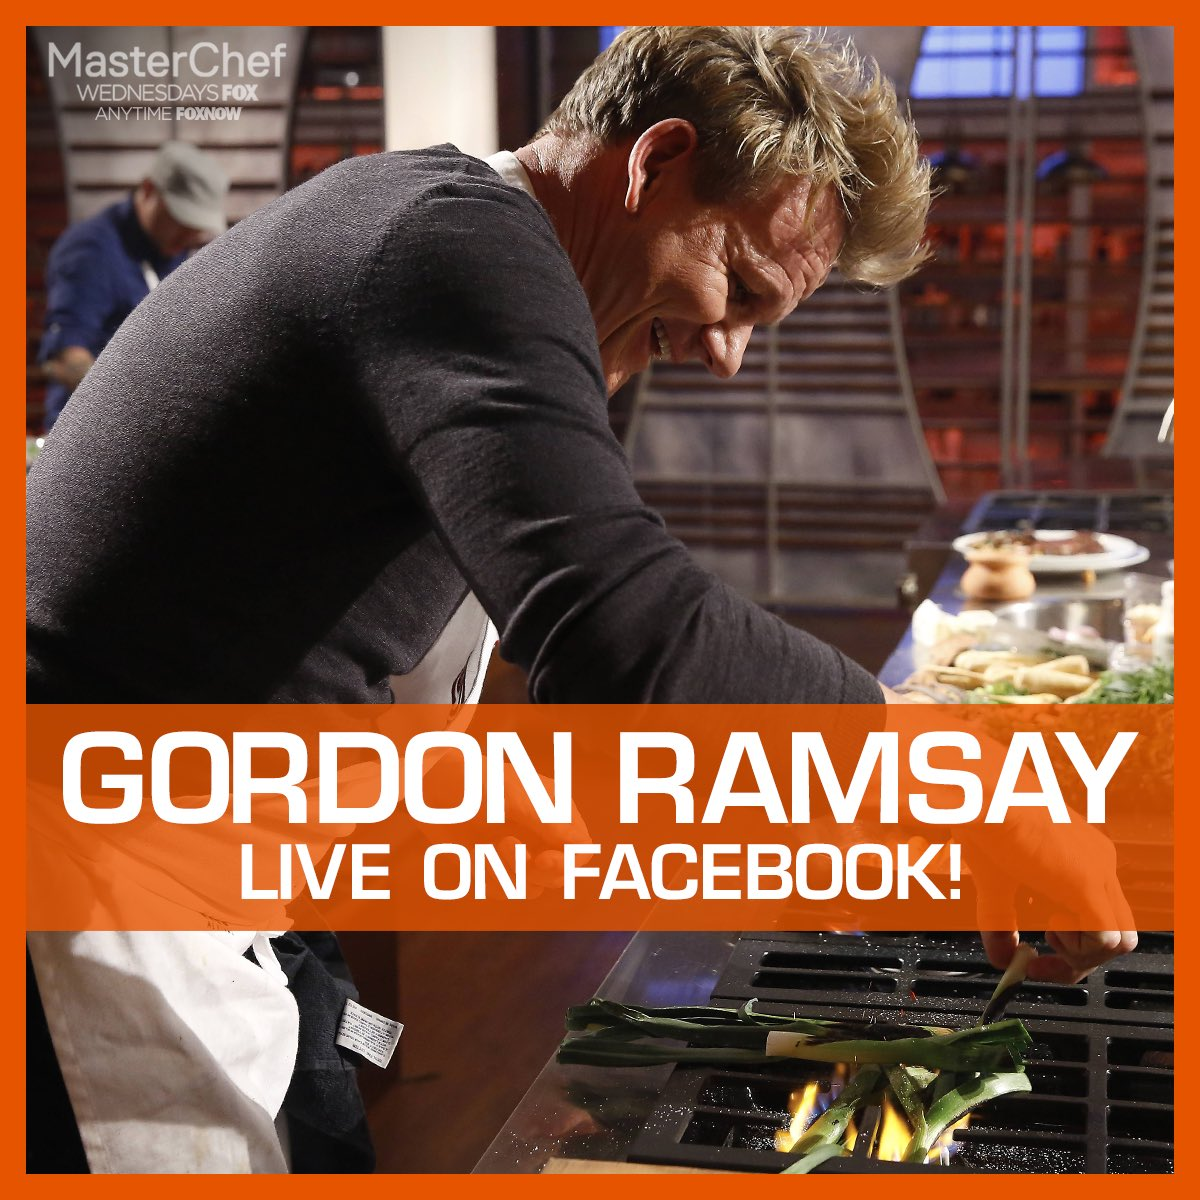 Join me tomorrow at 4 PM EST/1PM PST as I go live on Facebook to demo a dish from this week's @MASTERCHEFonFOX ! https://t.co/grZn0DAtwu